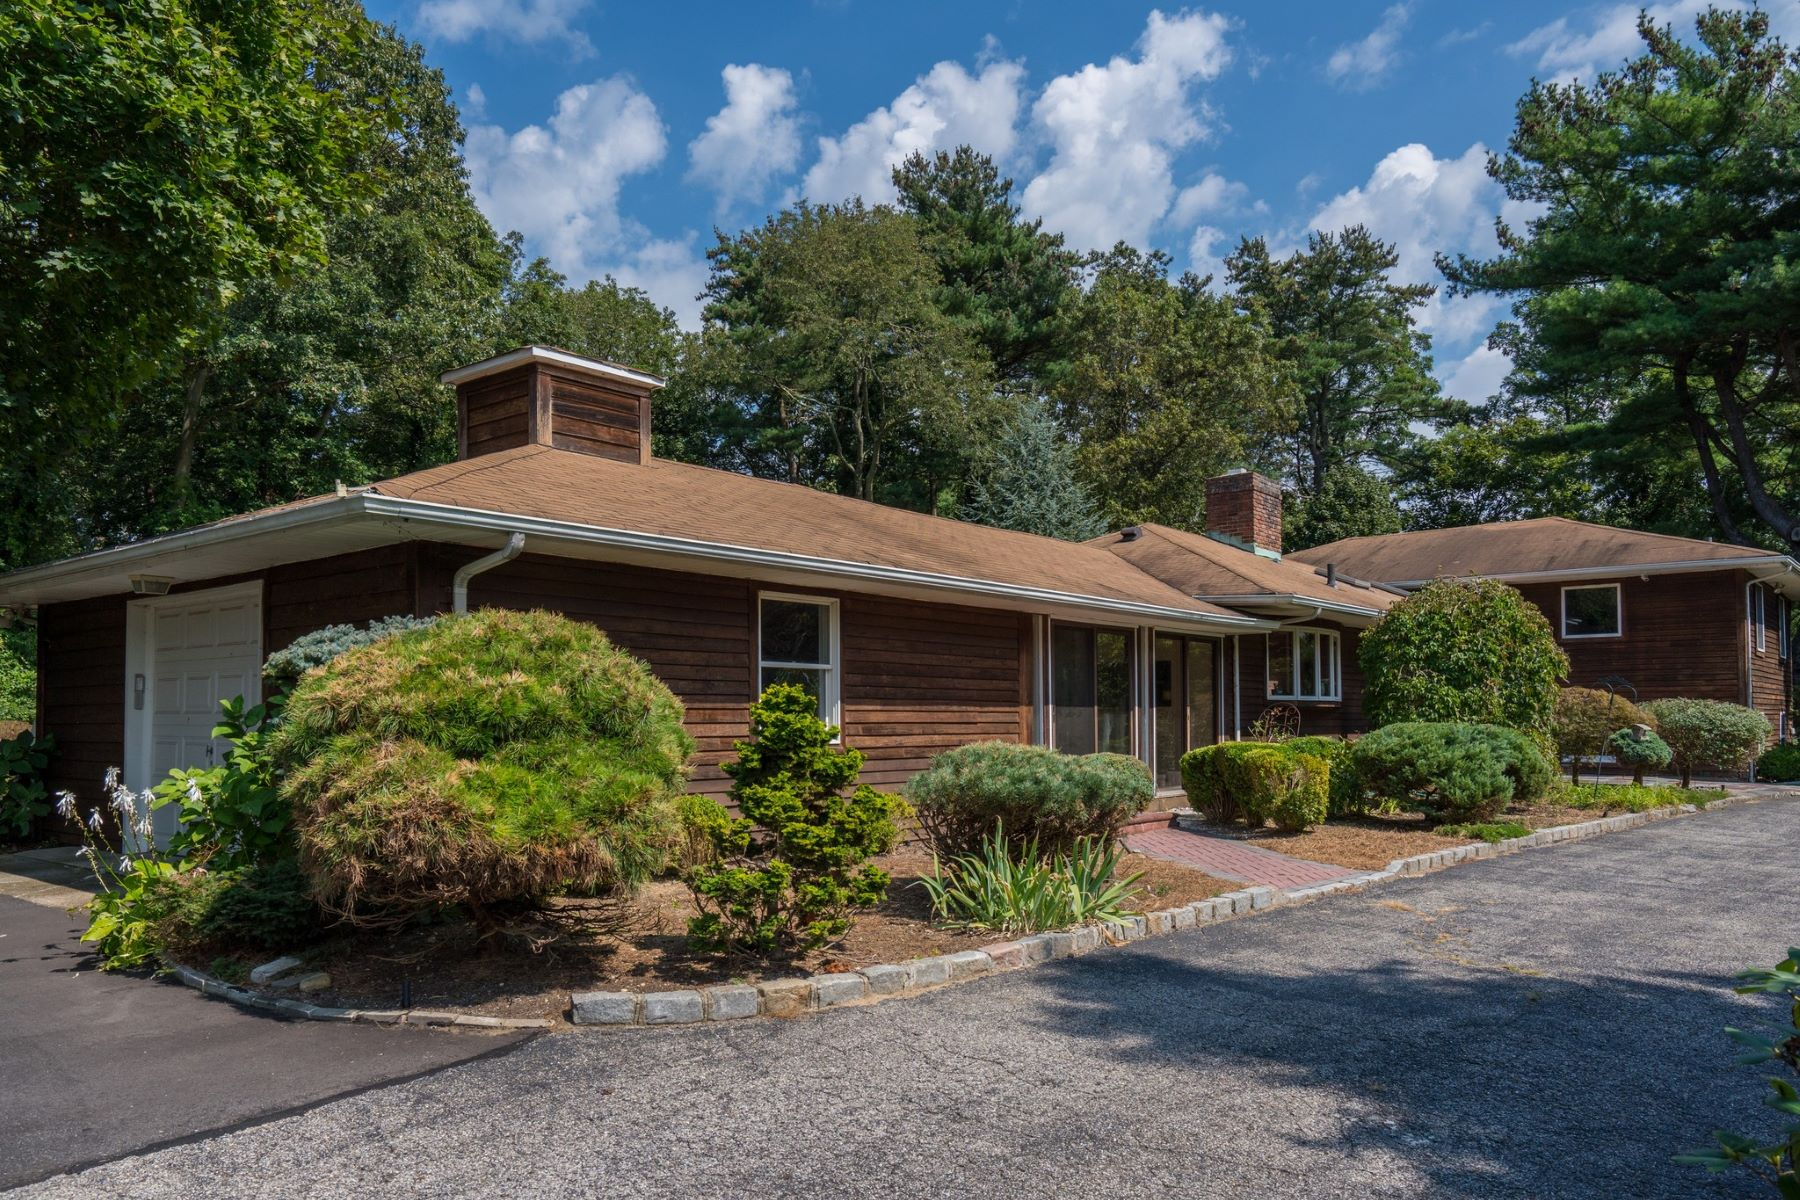 Single Family Homes for Sale at Brookville 2 Tappentown Lane Brookville, New York 11545 United States